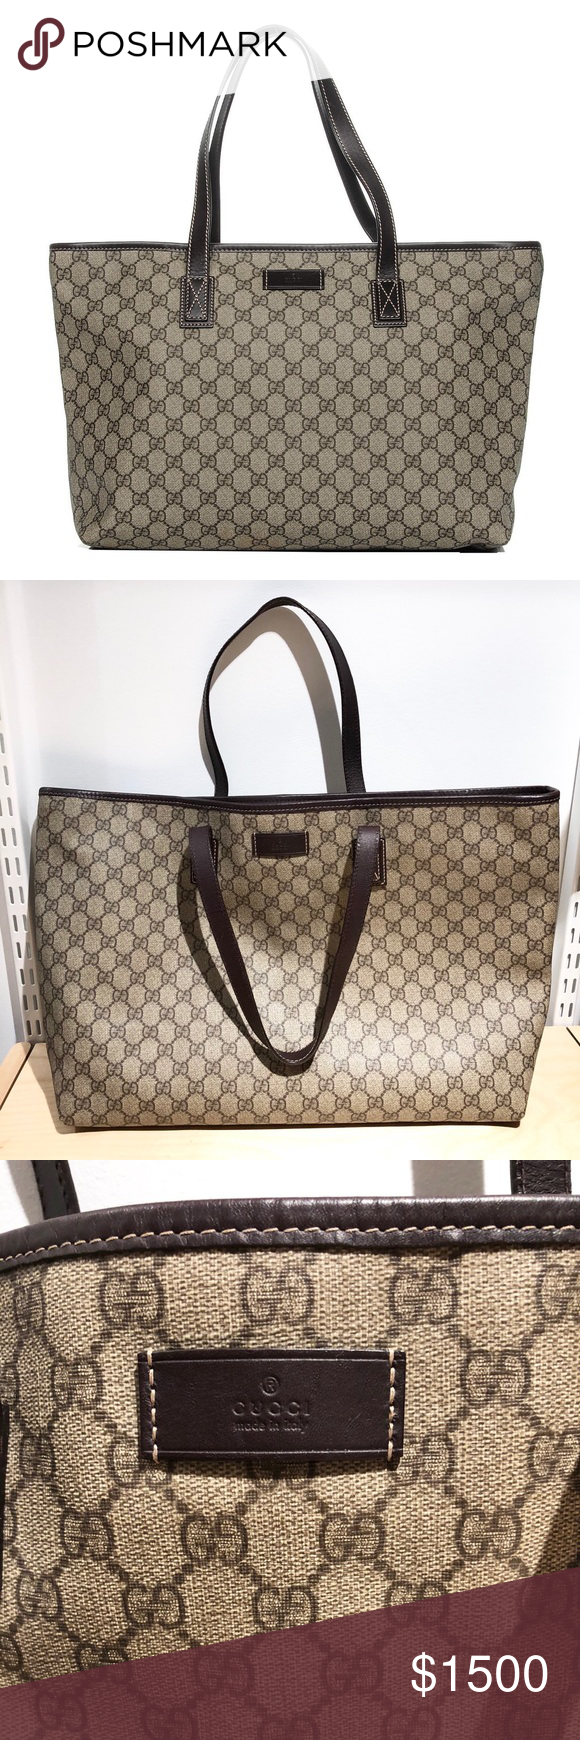 9bd8d7596999 Authentic Gucci Gg Supreme Canvas Large Tote Bag This is authentic like new  condition Gucci Gg